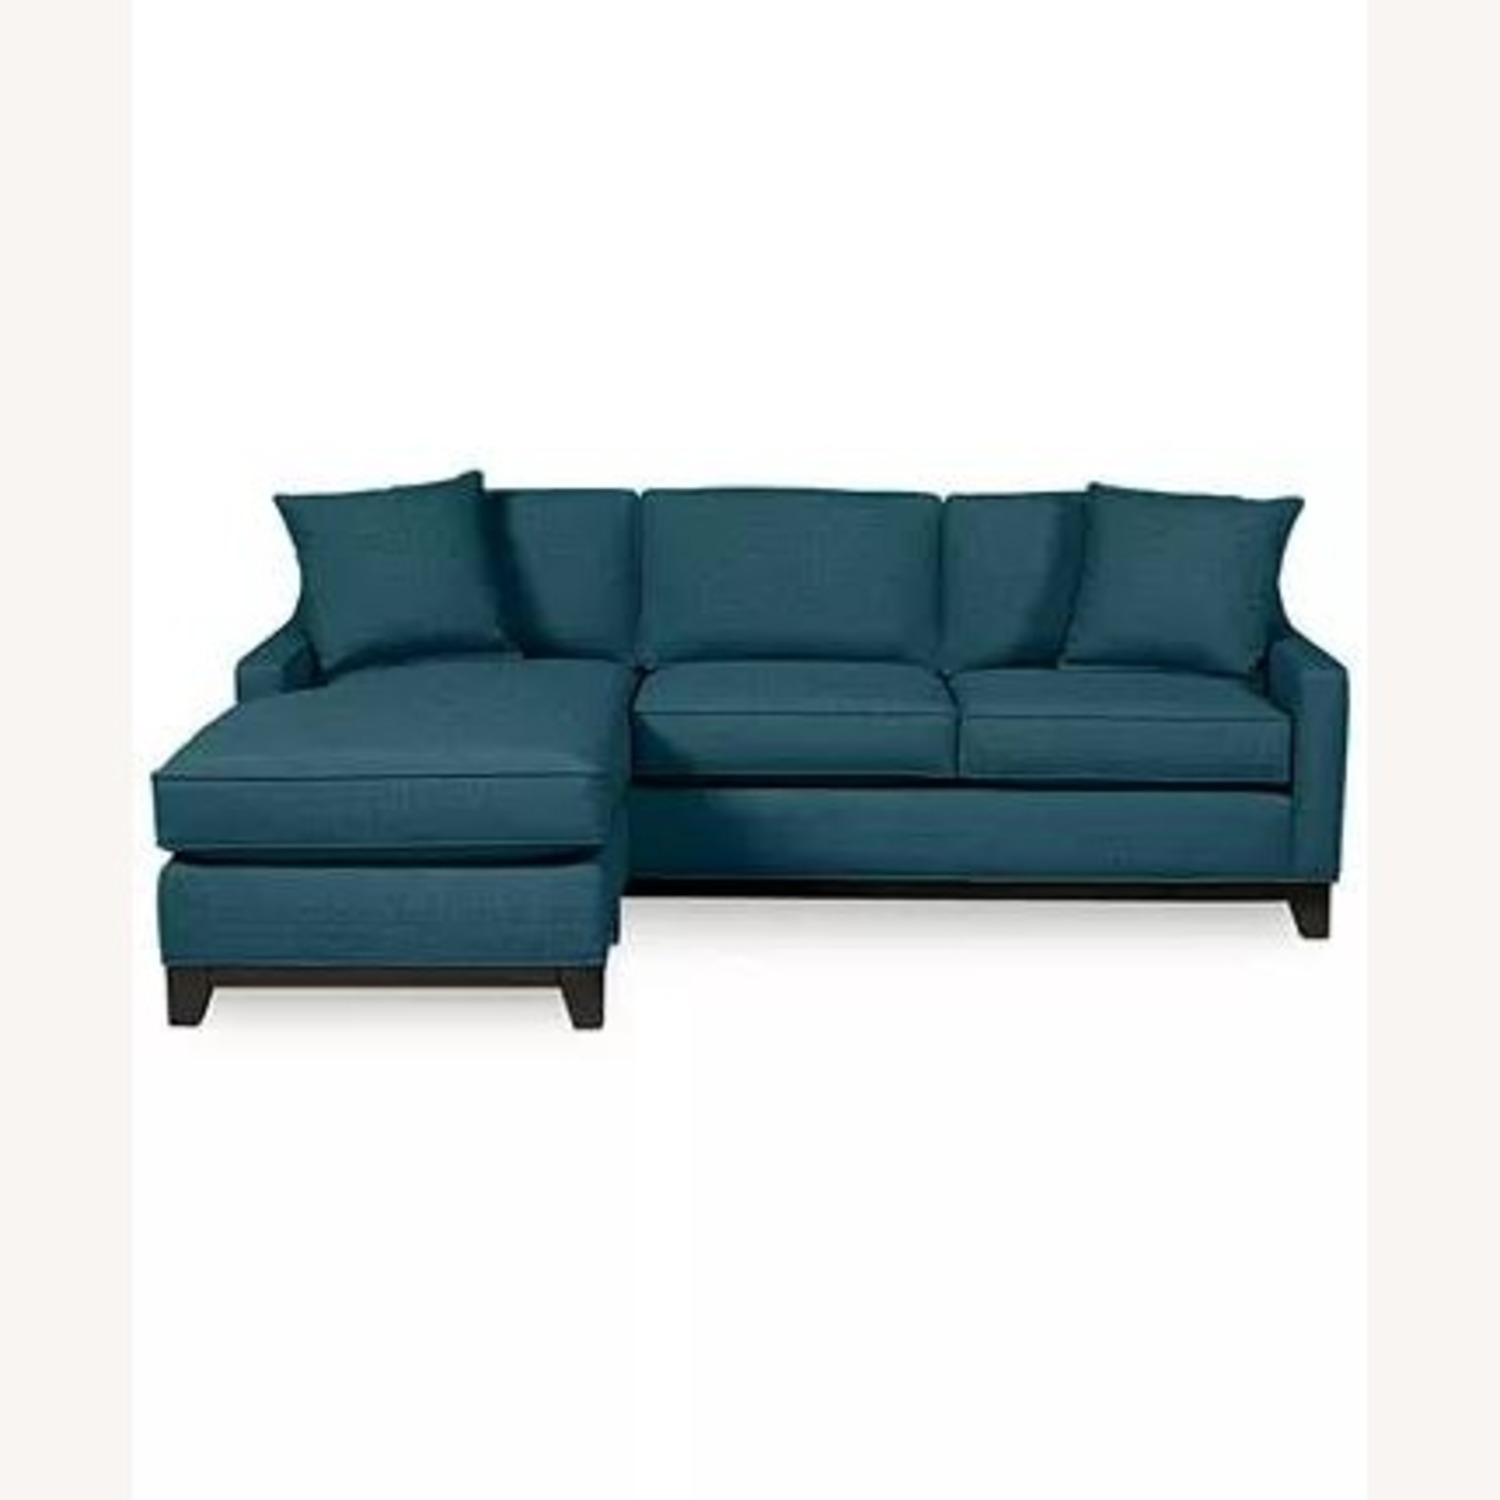 "Macy's Keegan 90"" 2-Piece Reversible Chaise Sectional - image-2"